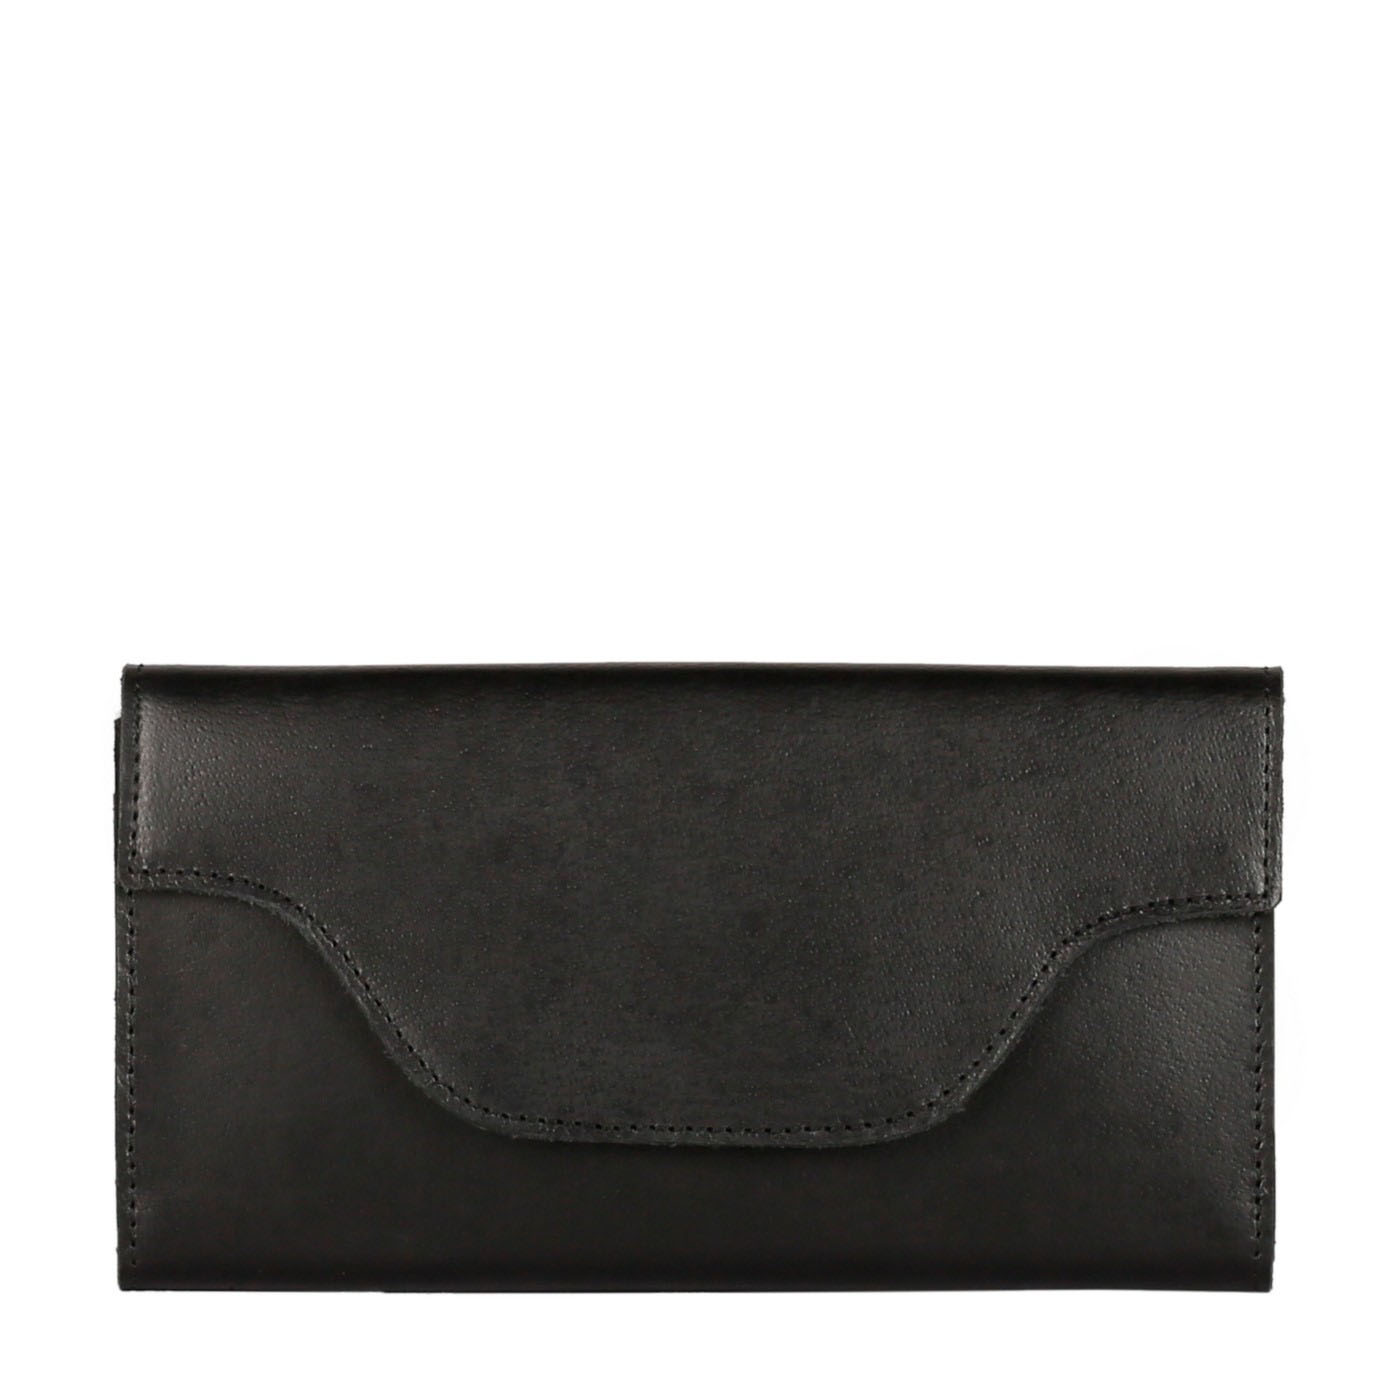 MY CARRY BAG Wallet - hunter waxy black